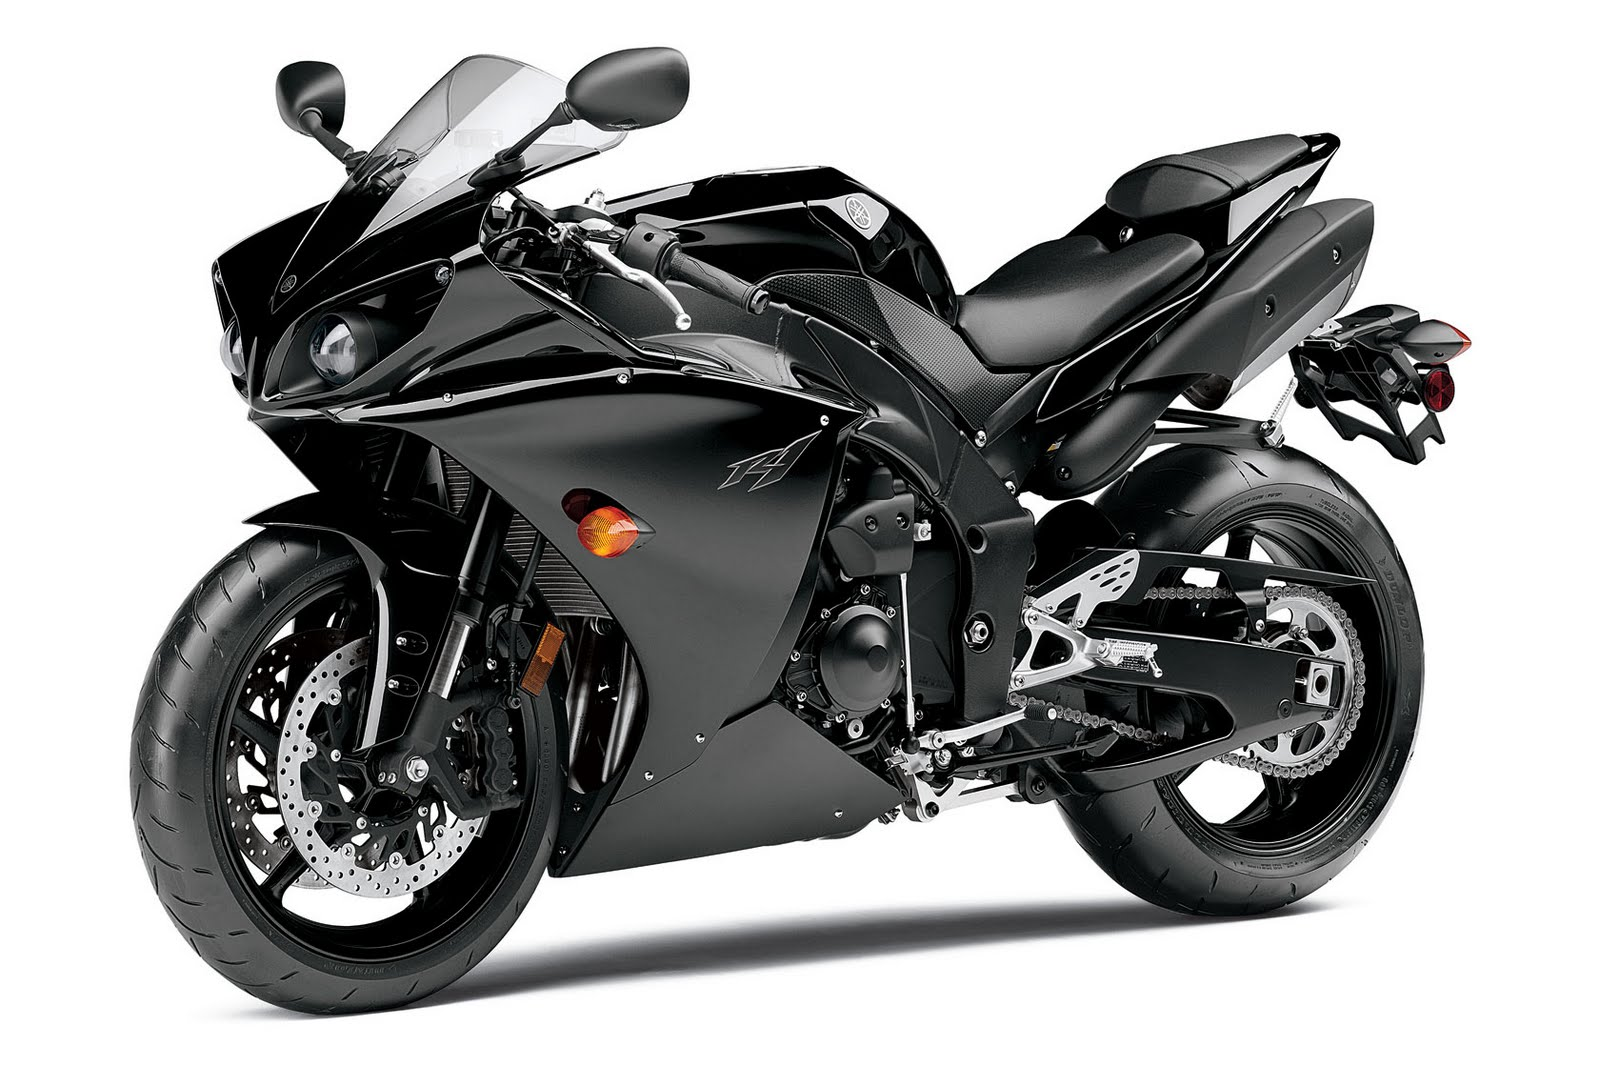 2011 Yamaha R1 Sports Bike